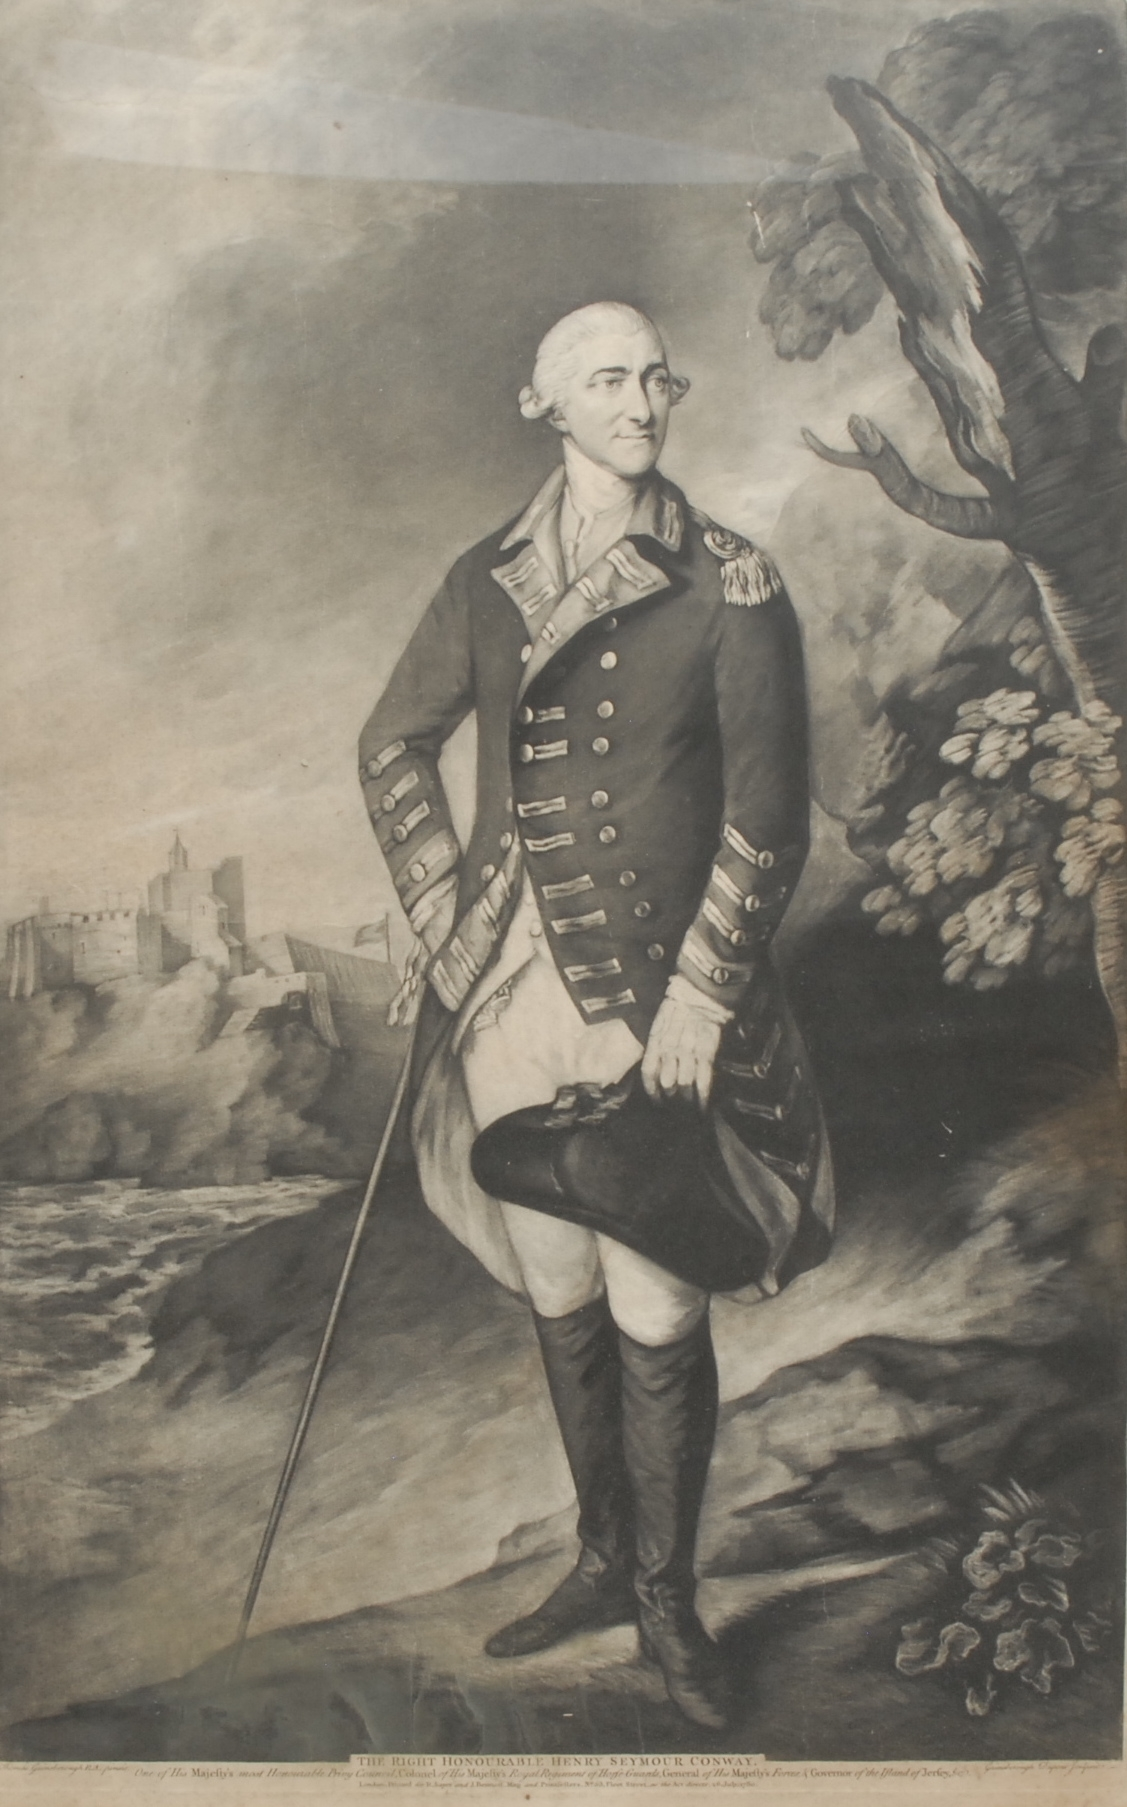 Thomas Gainsborough, after, portrait of The Right Honourable Henry Seymour Conway, monochrome - Image 2 of 2